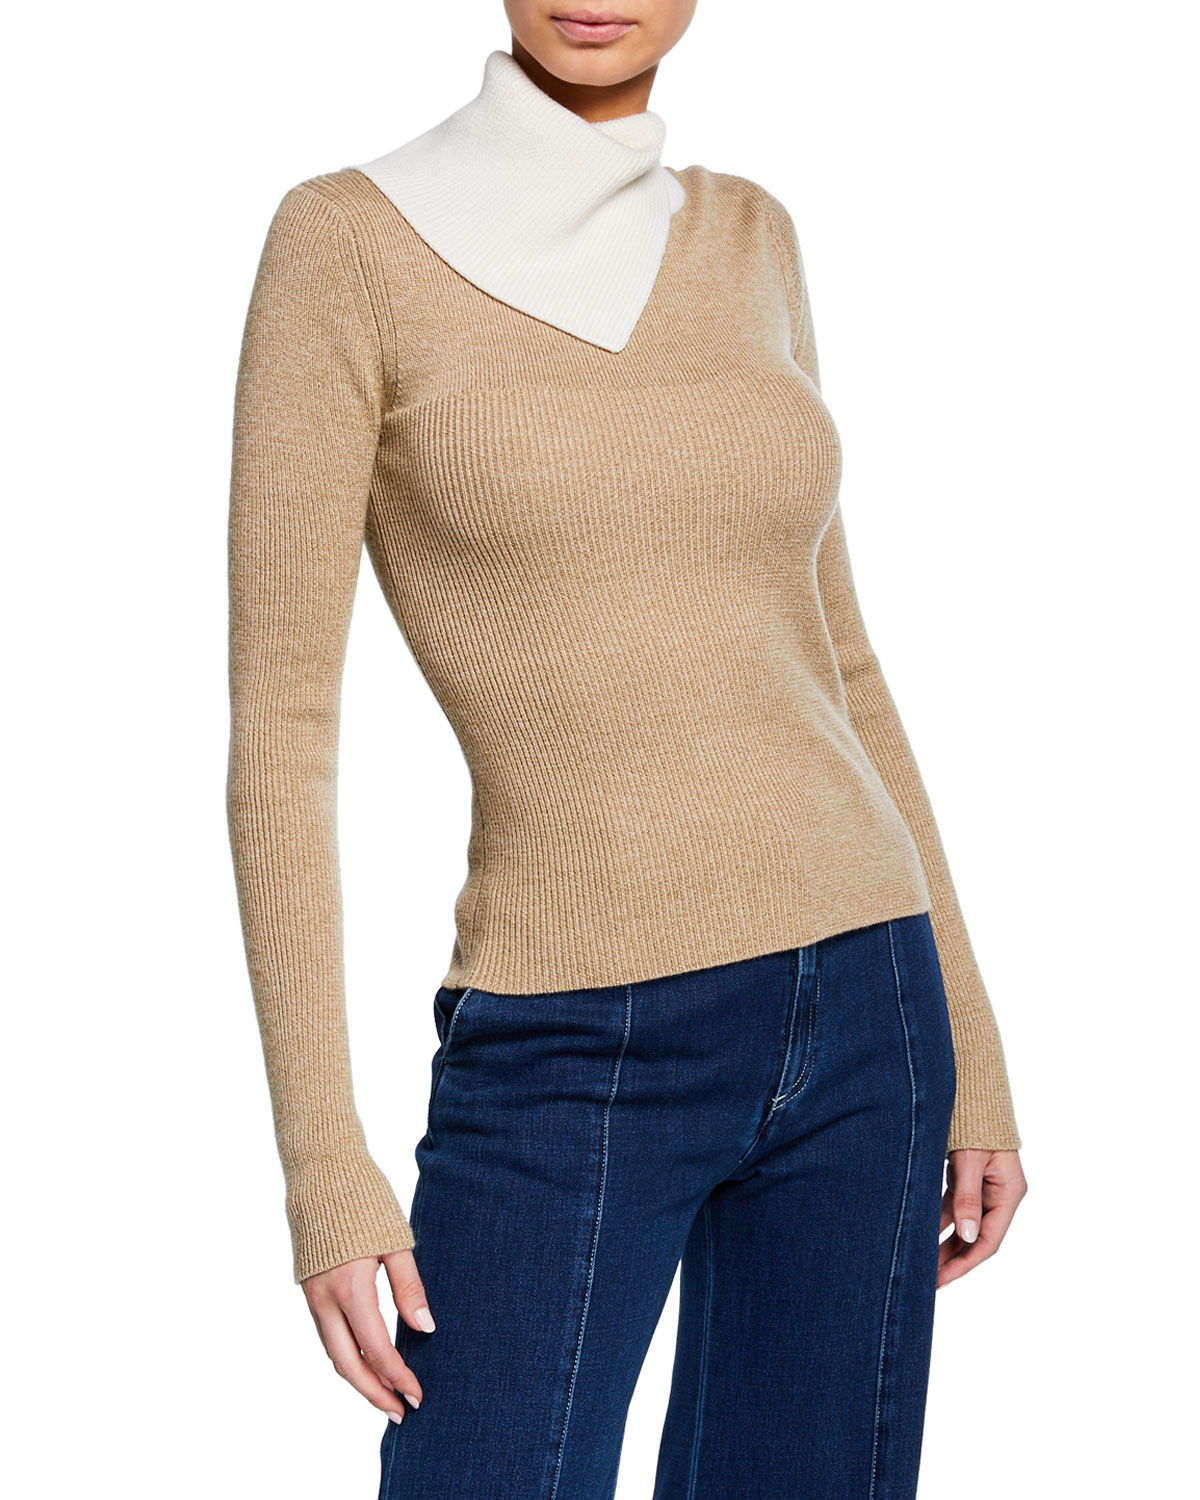 Two Tone Draped Turtleneck Sweater by See By Chloe